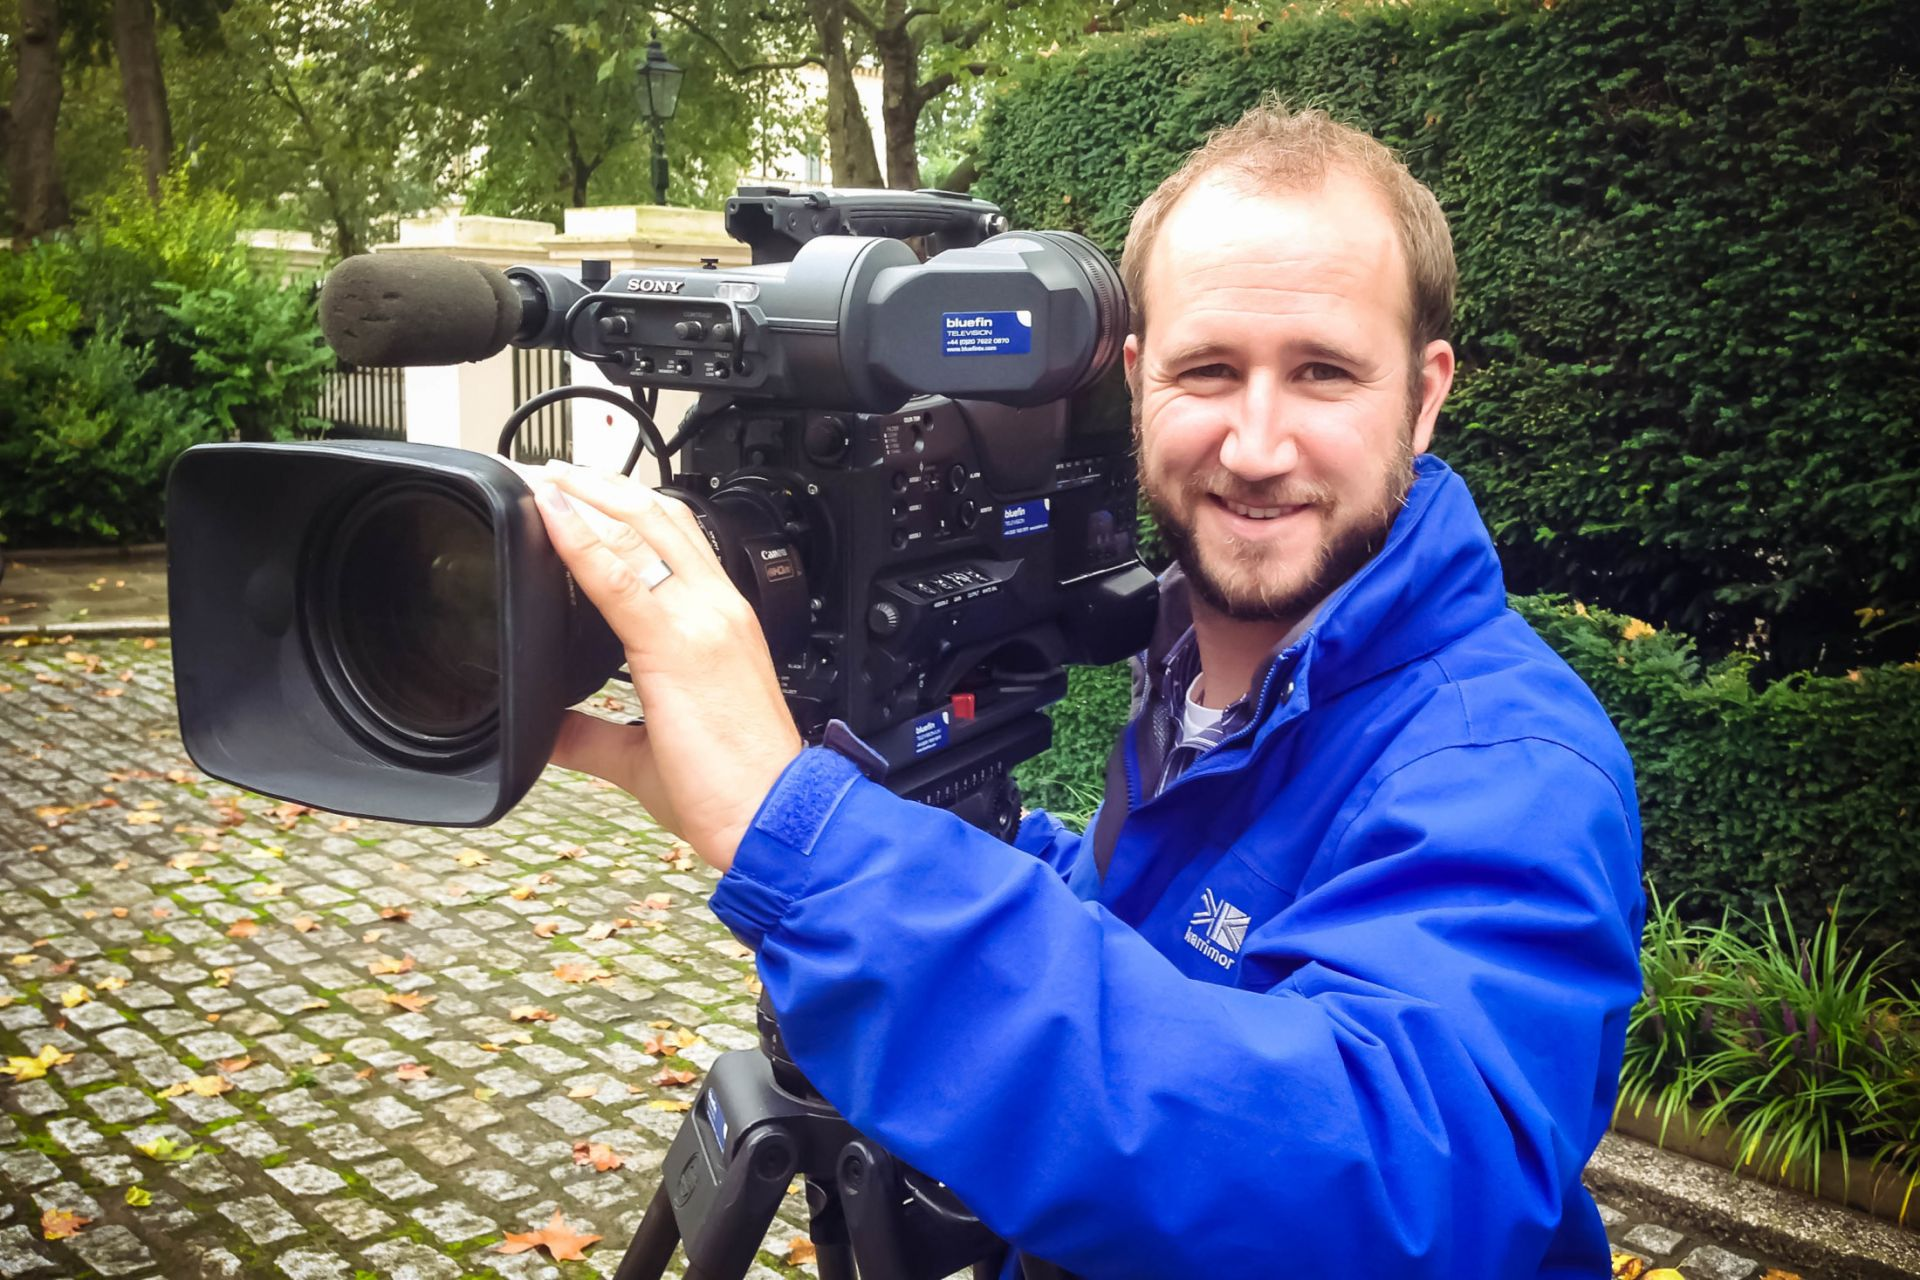 cameraman resume format%0A resume and cover letter writing services